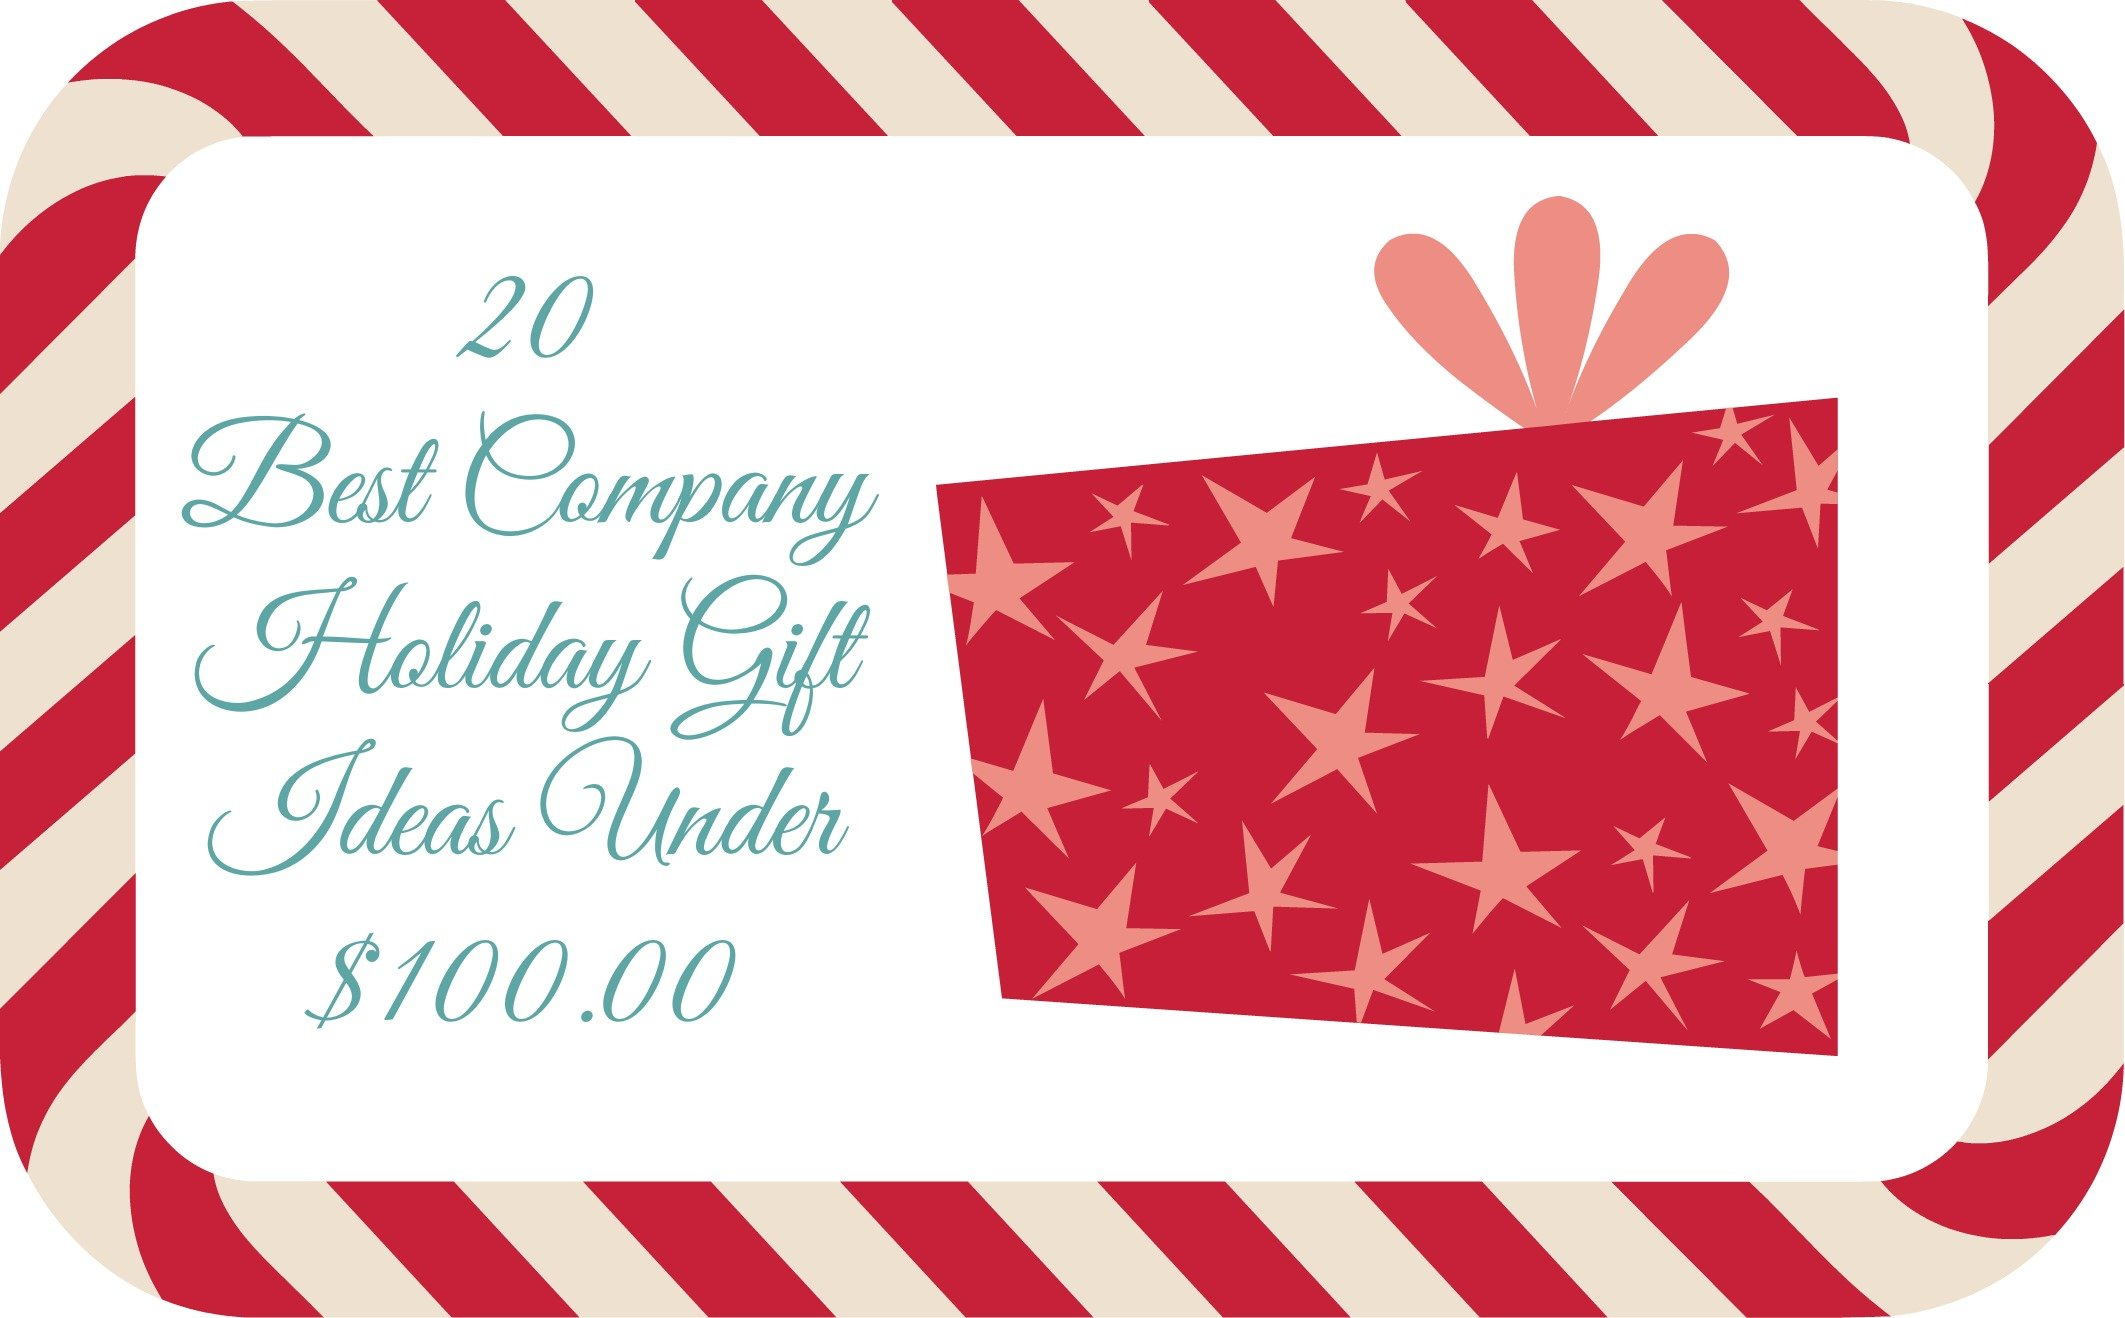 20 Best Company Holiday Gift Ideas Under 100